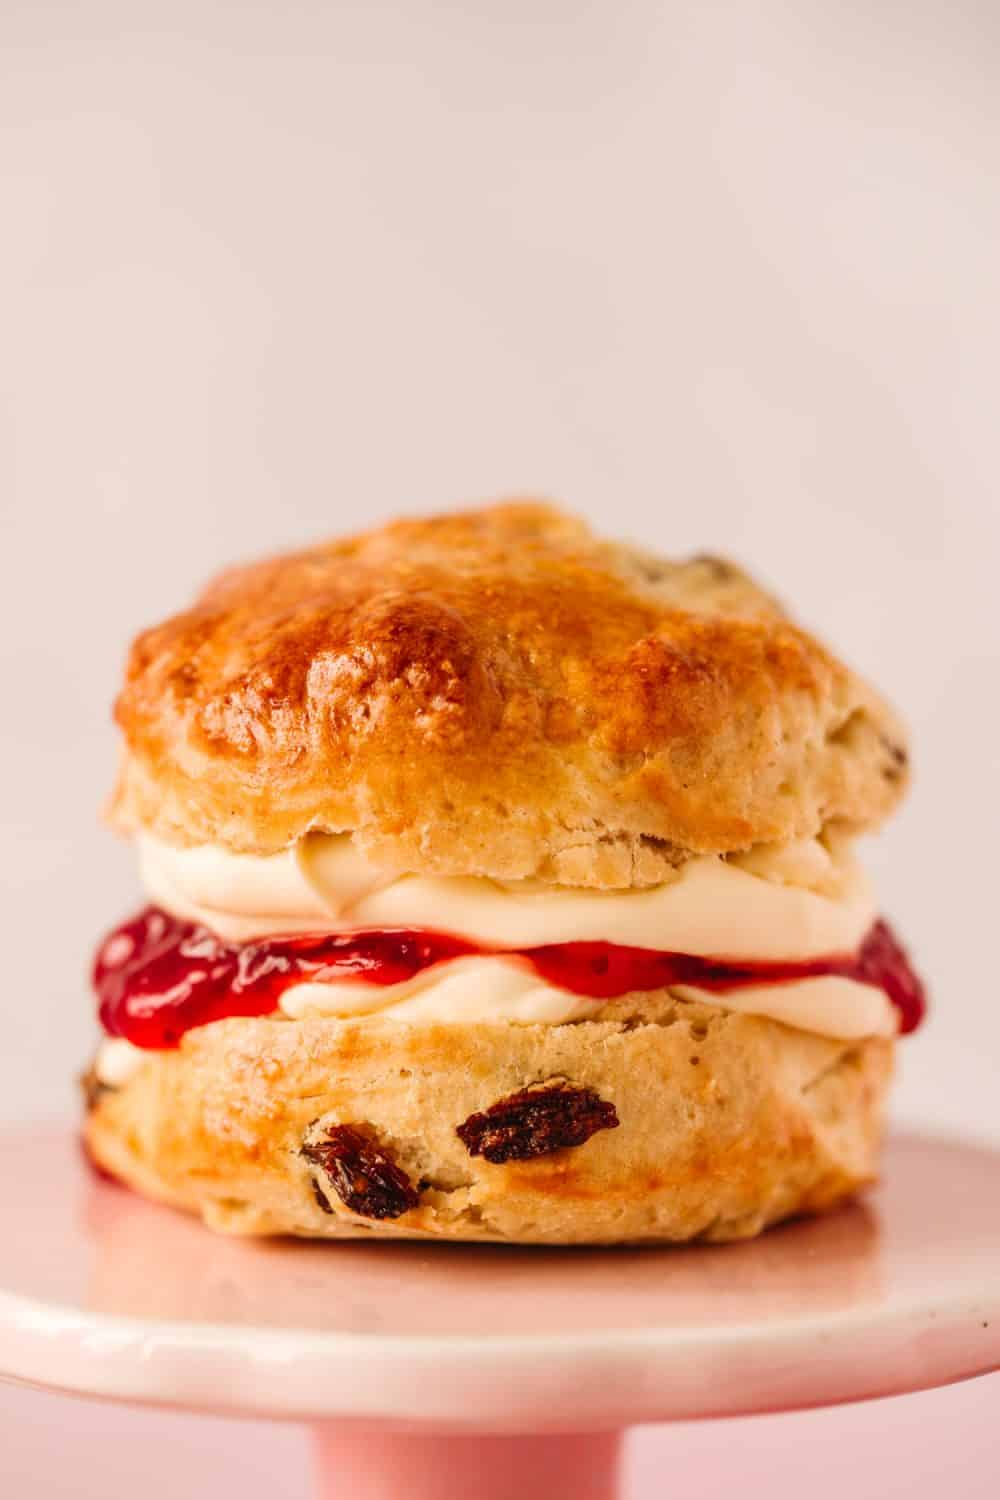 A fruit scone that has been cut in half and has strawberry jam and clotted cream spread on it.